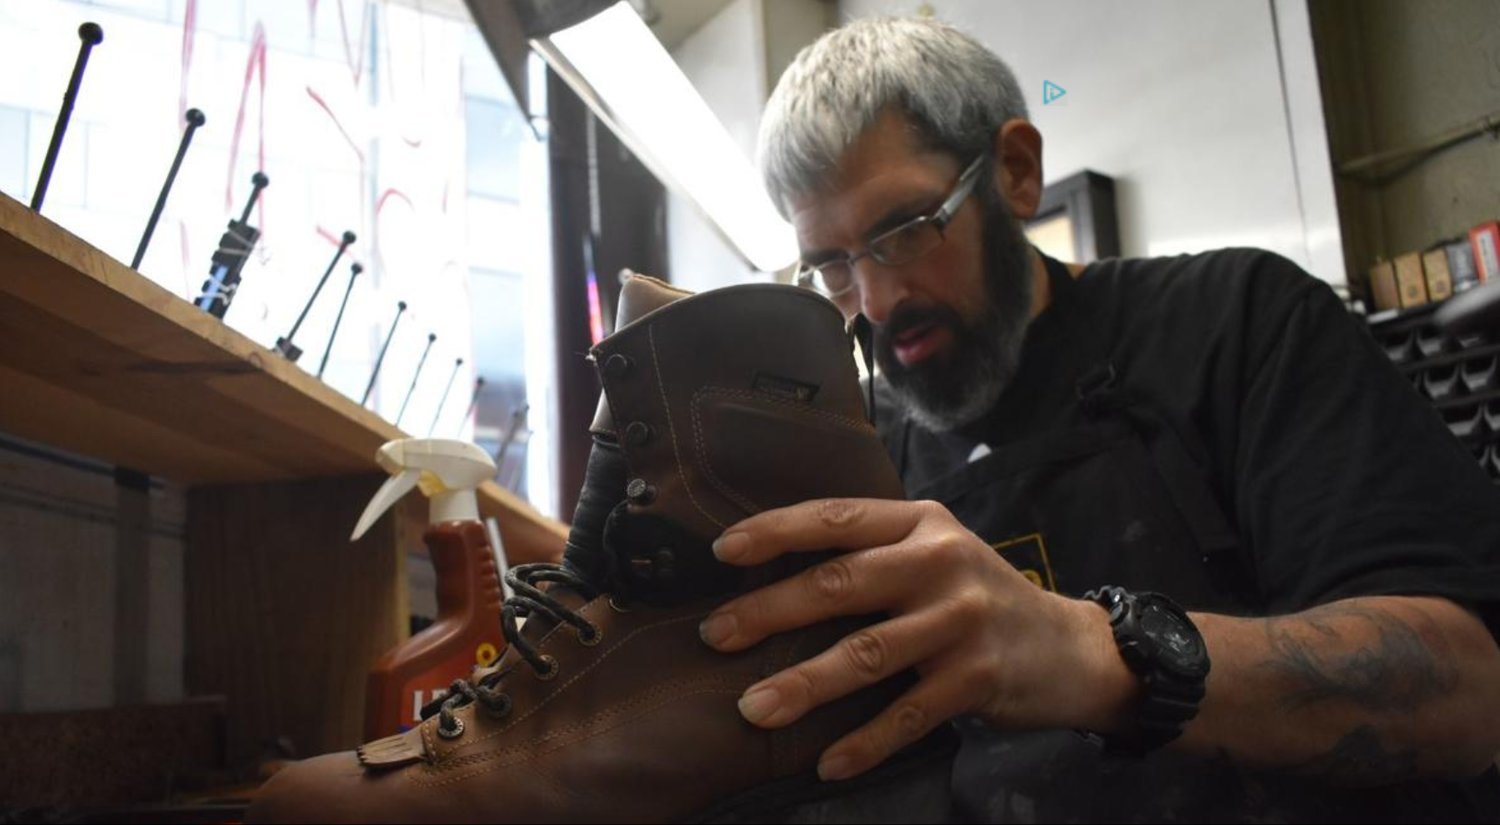 Jimmy Garland, one of the new owners of the Boaz Shoe Repair in Paducah, works on a boot. (Paducah Sun/Derek Operle)